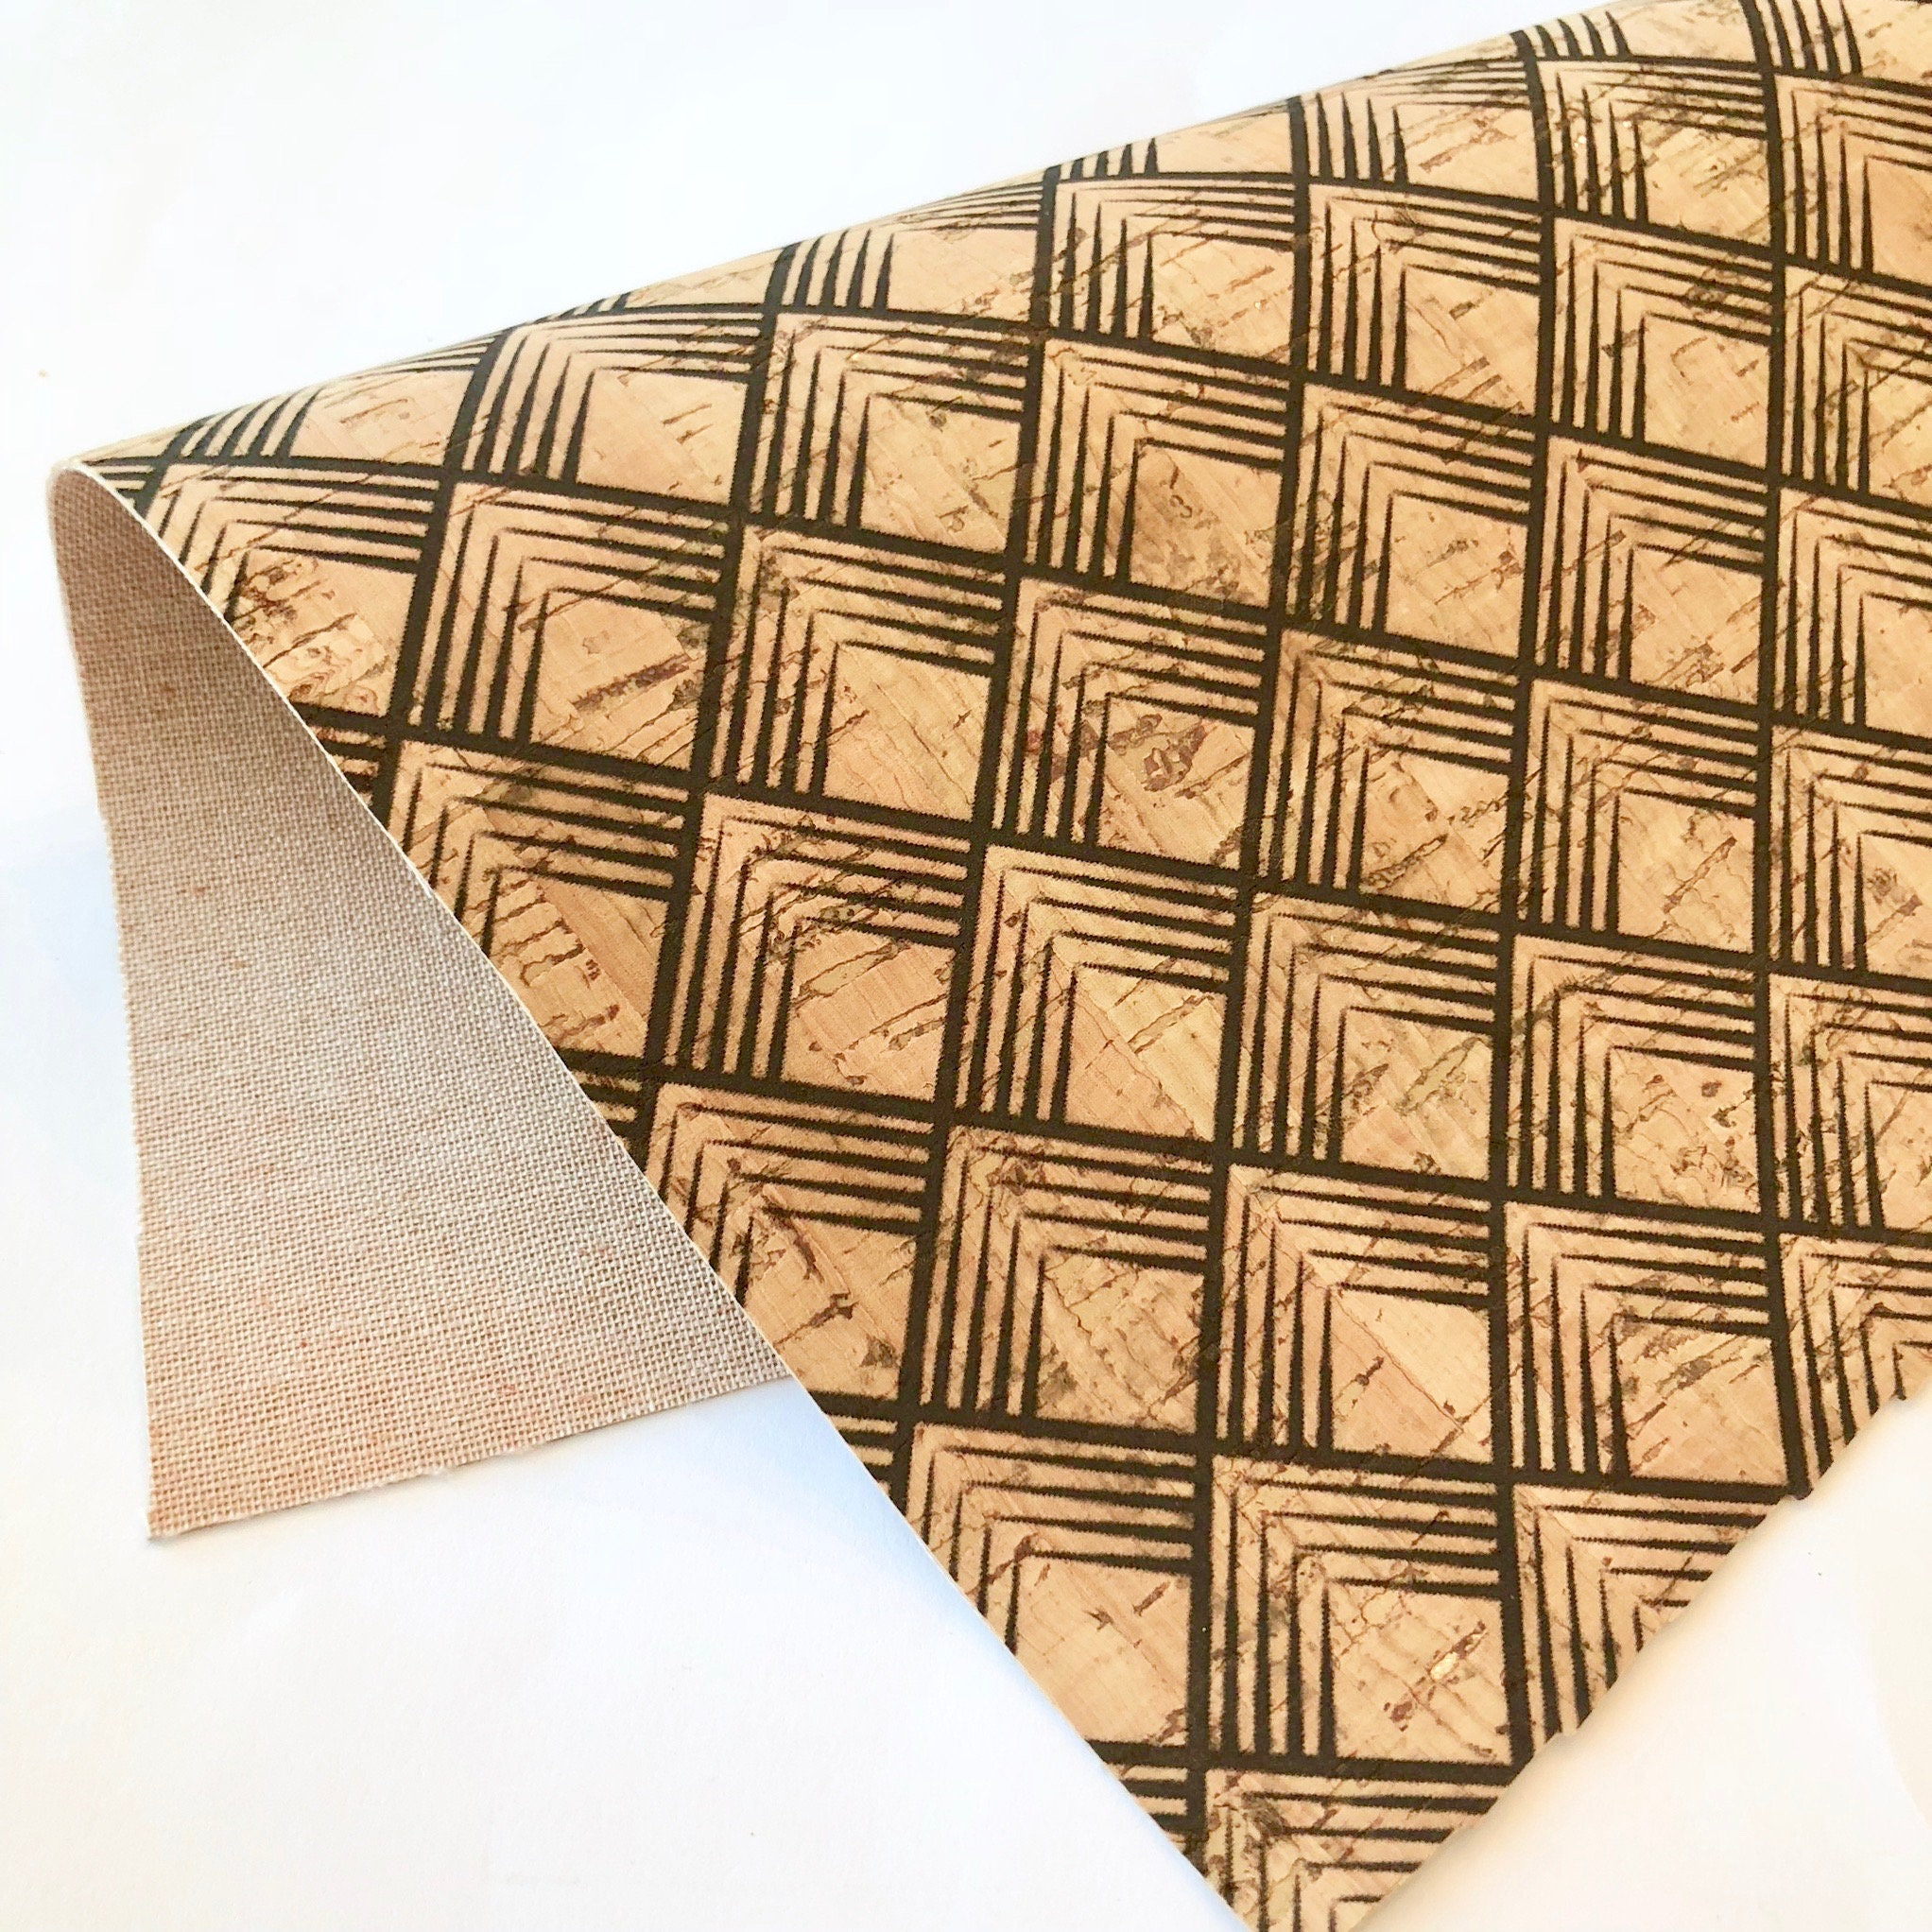 Shoes All Natural Purses Eco Friendly Leather Alternative SOLID BLACK Cork Fabric 12x12 sheet for DIY Earrings Hair Bows Crafts